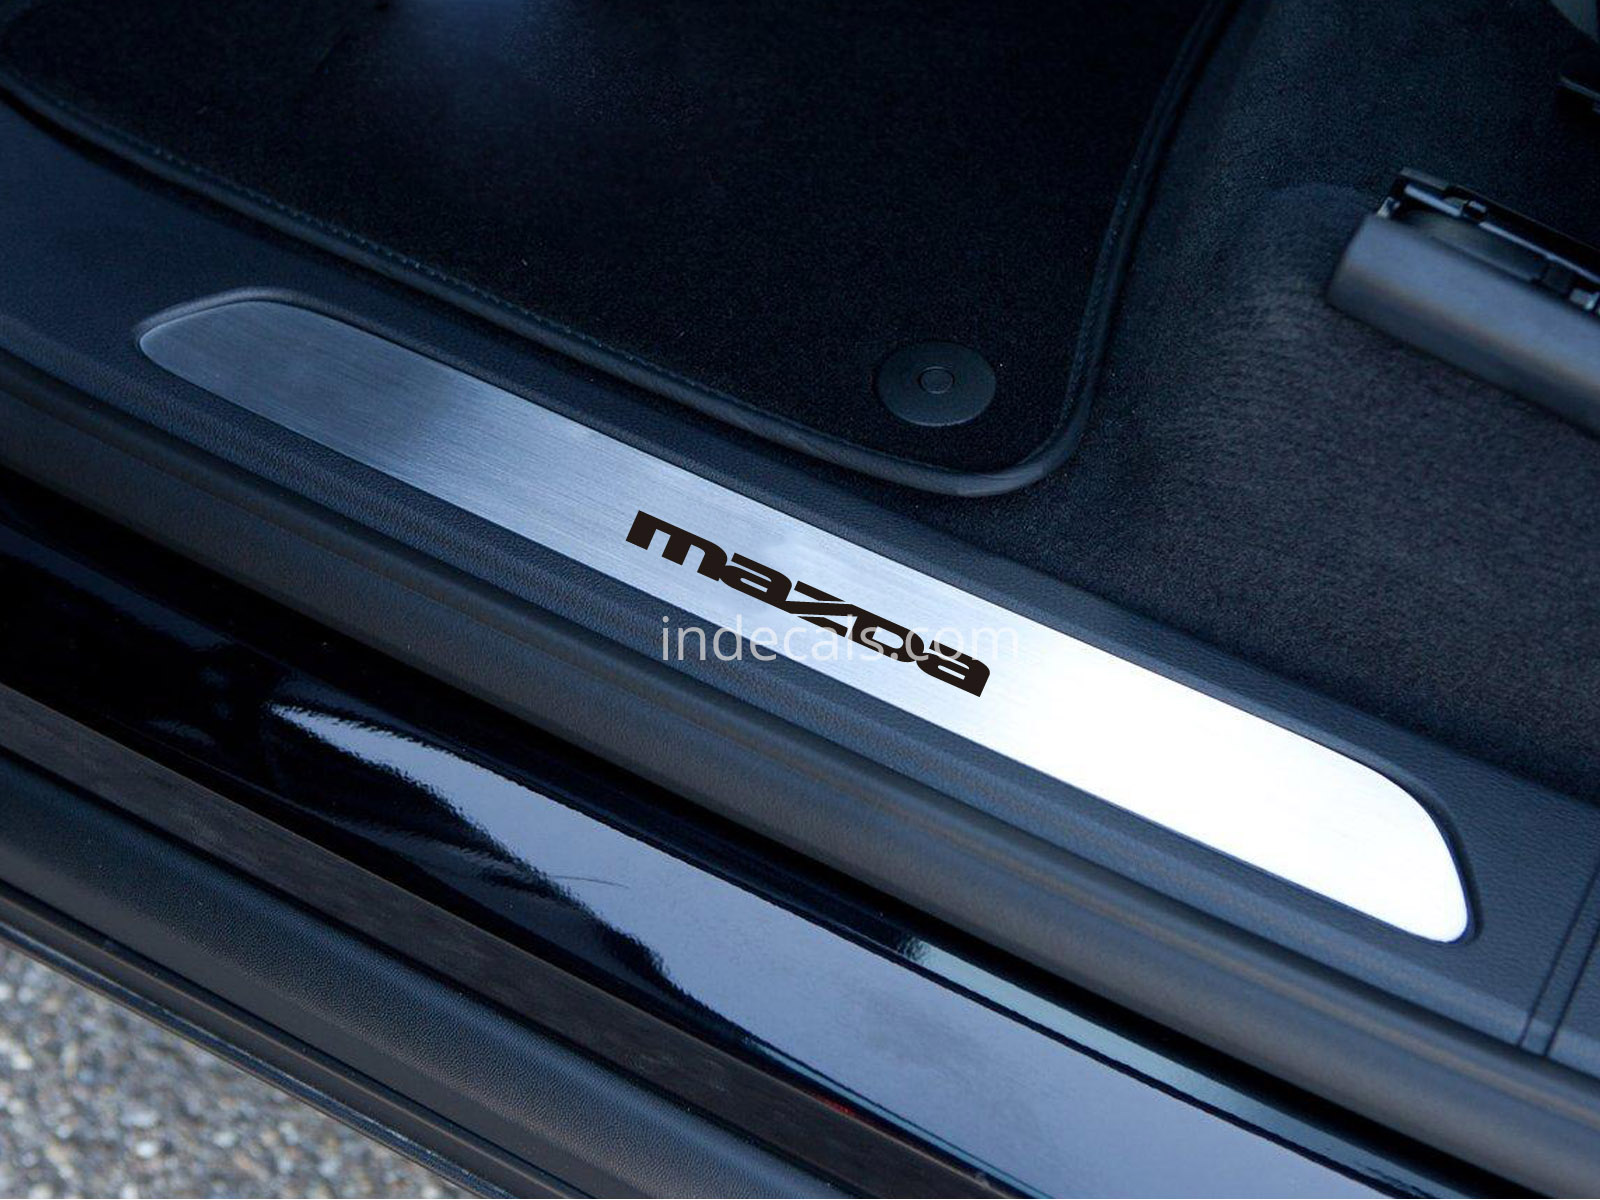 6 x Mazda Stickers for Door Sills - Black